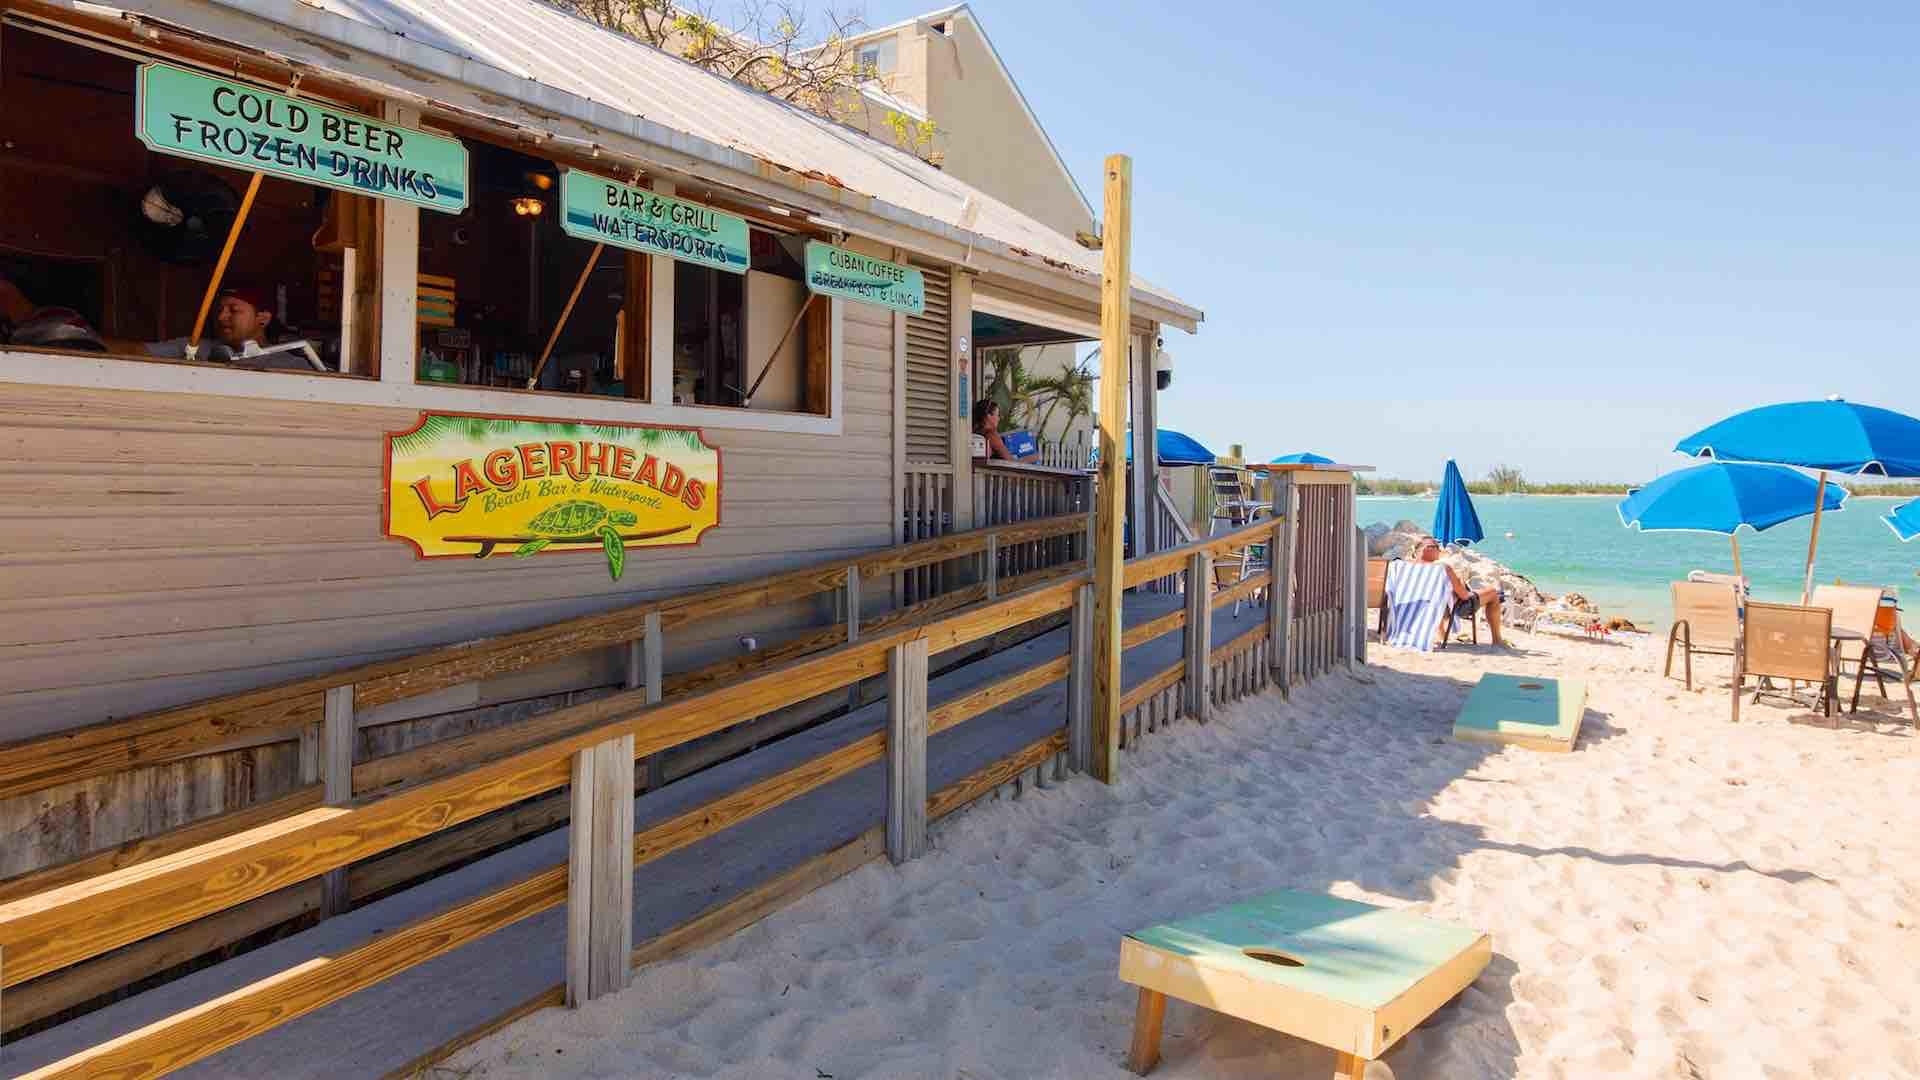 Get yourself a cold drink at Lagerheads, located at Simonton Beach...